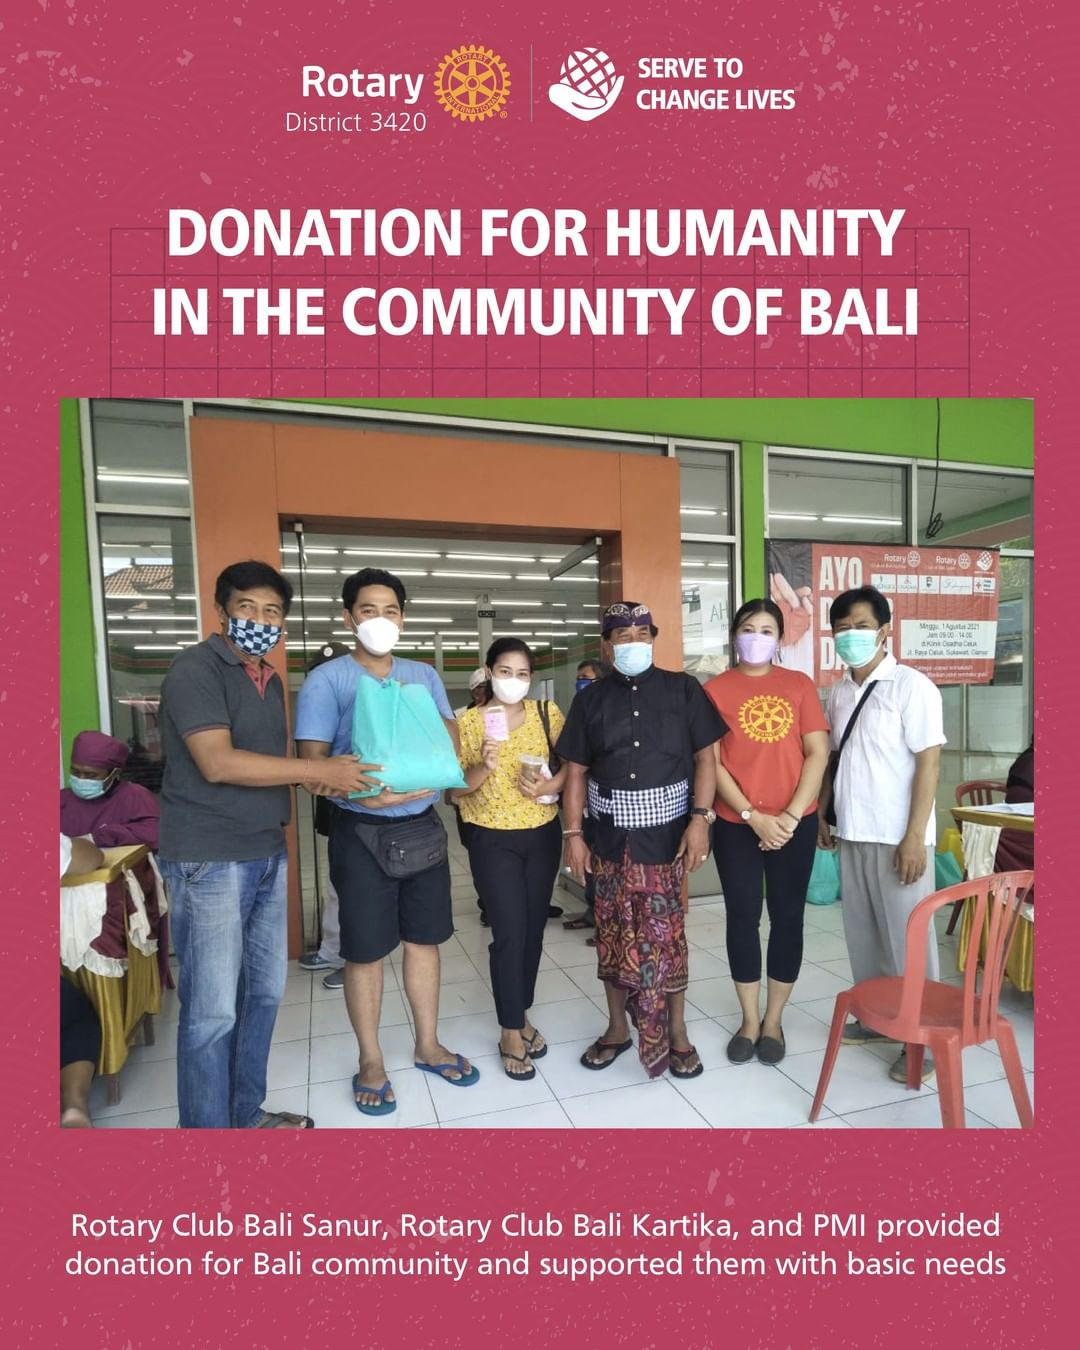 Donation for Humanity in The Community of Bali